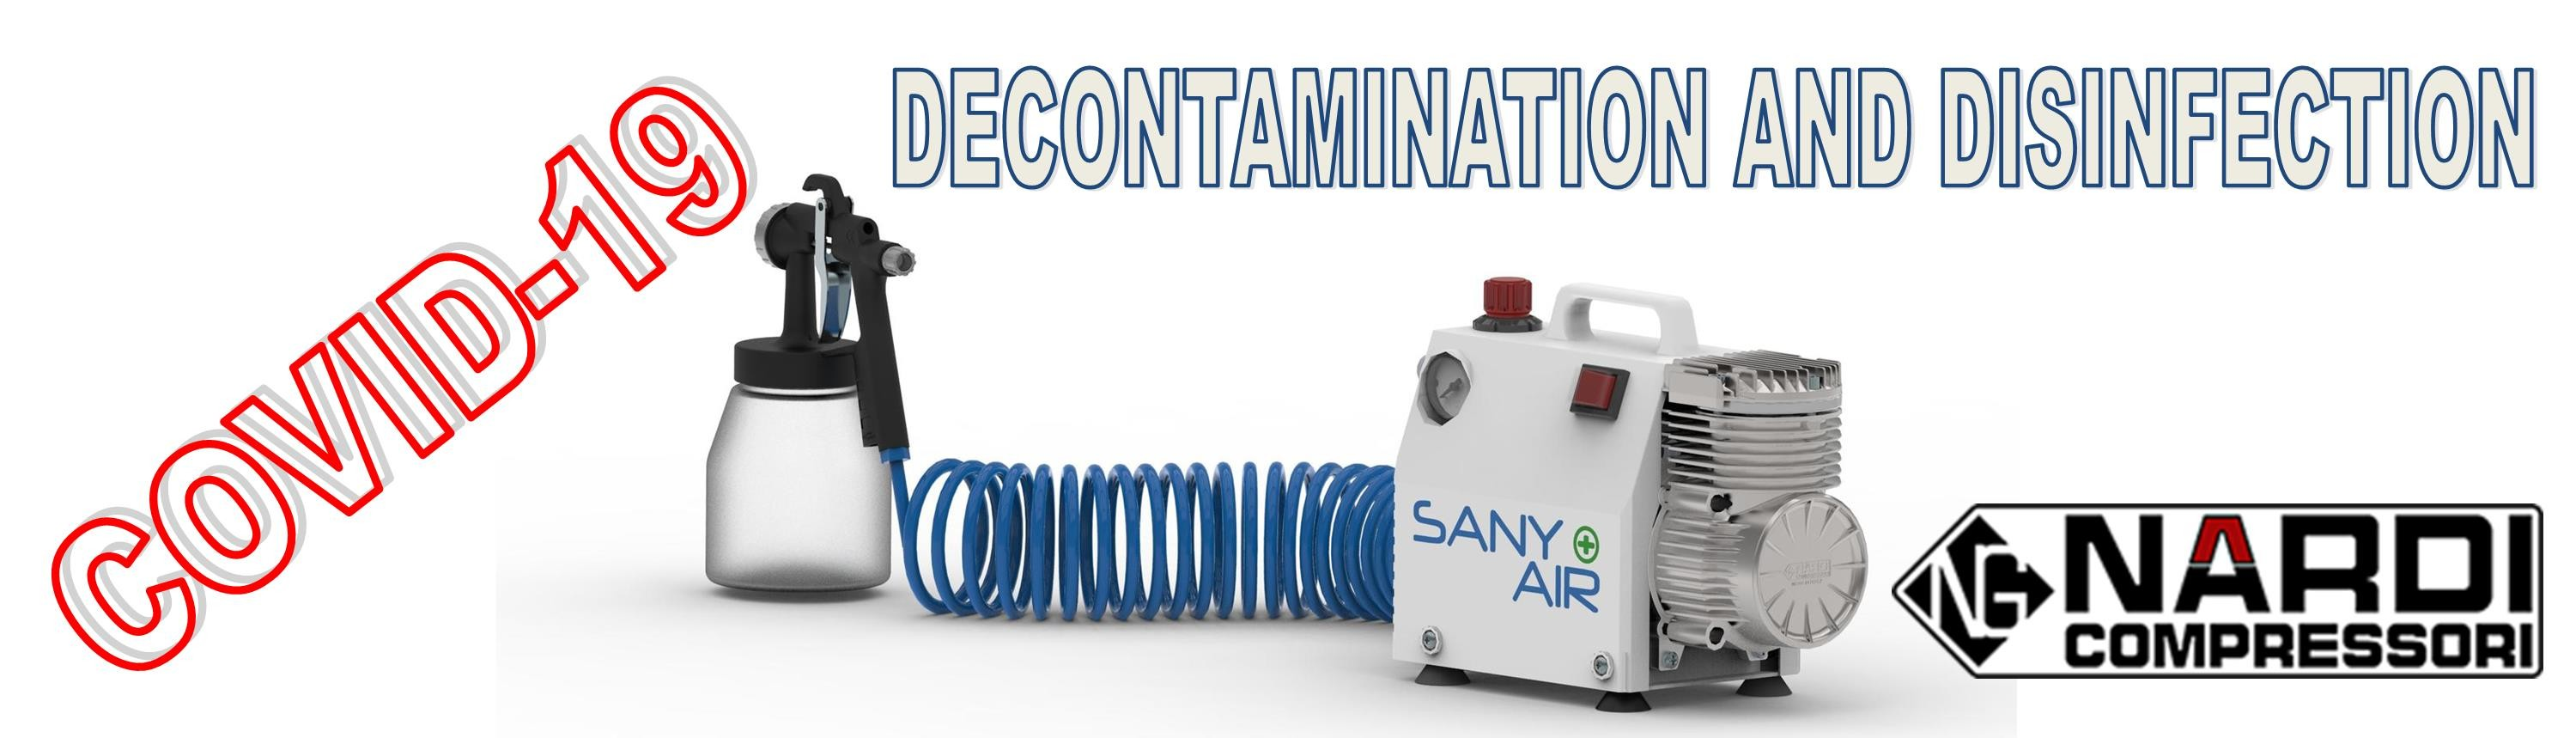 Decontamination and disinfection